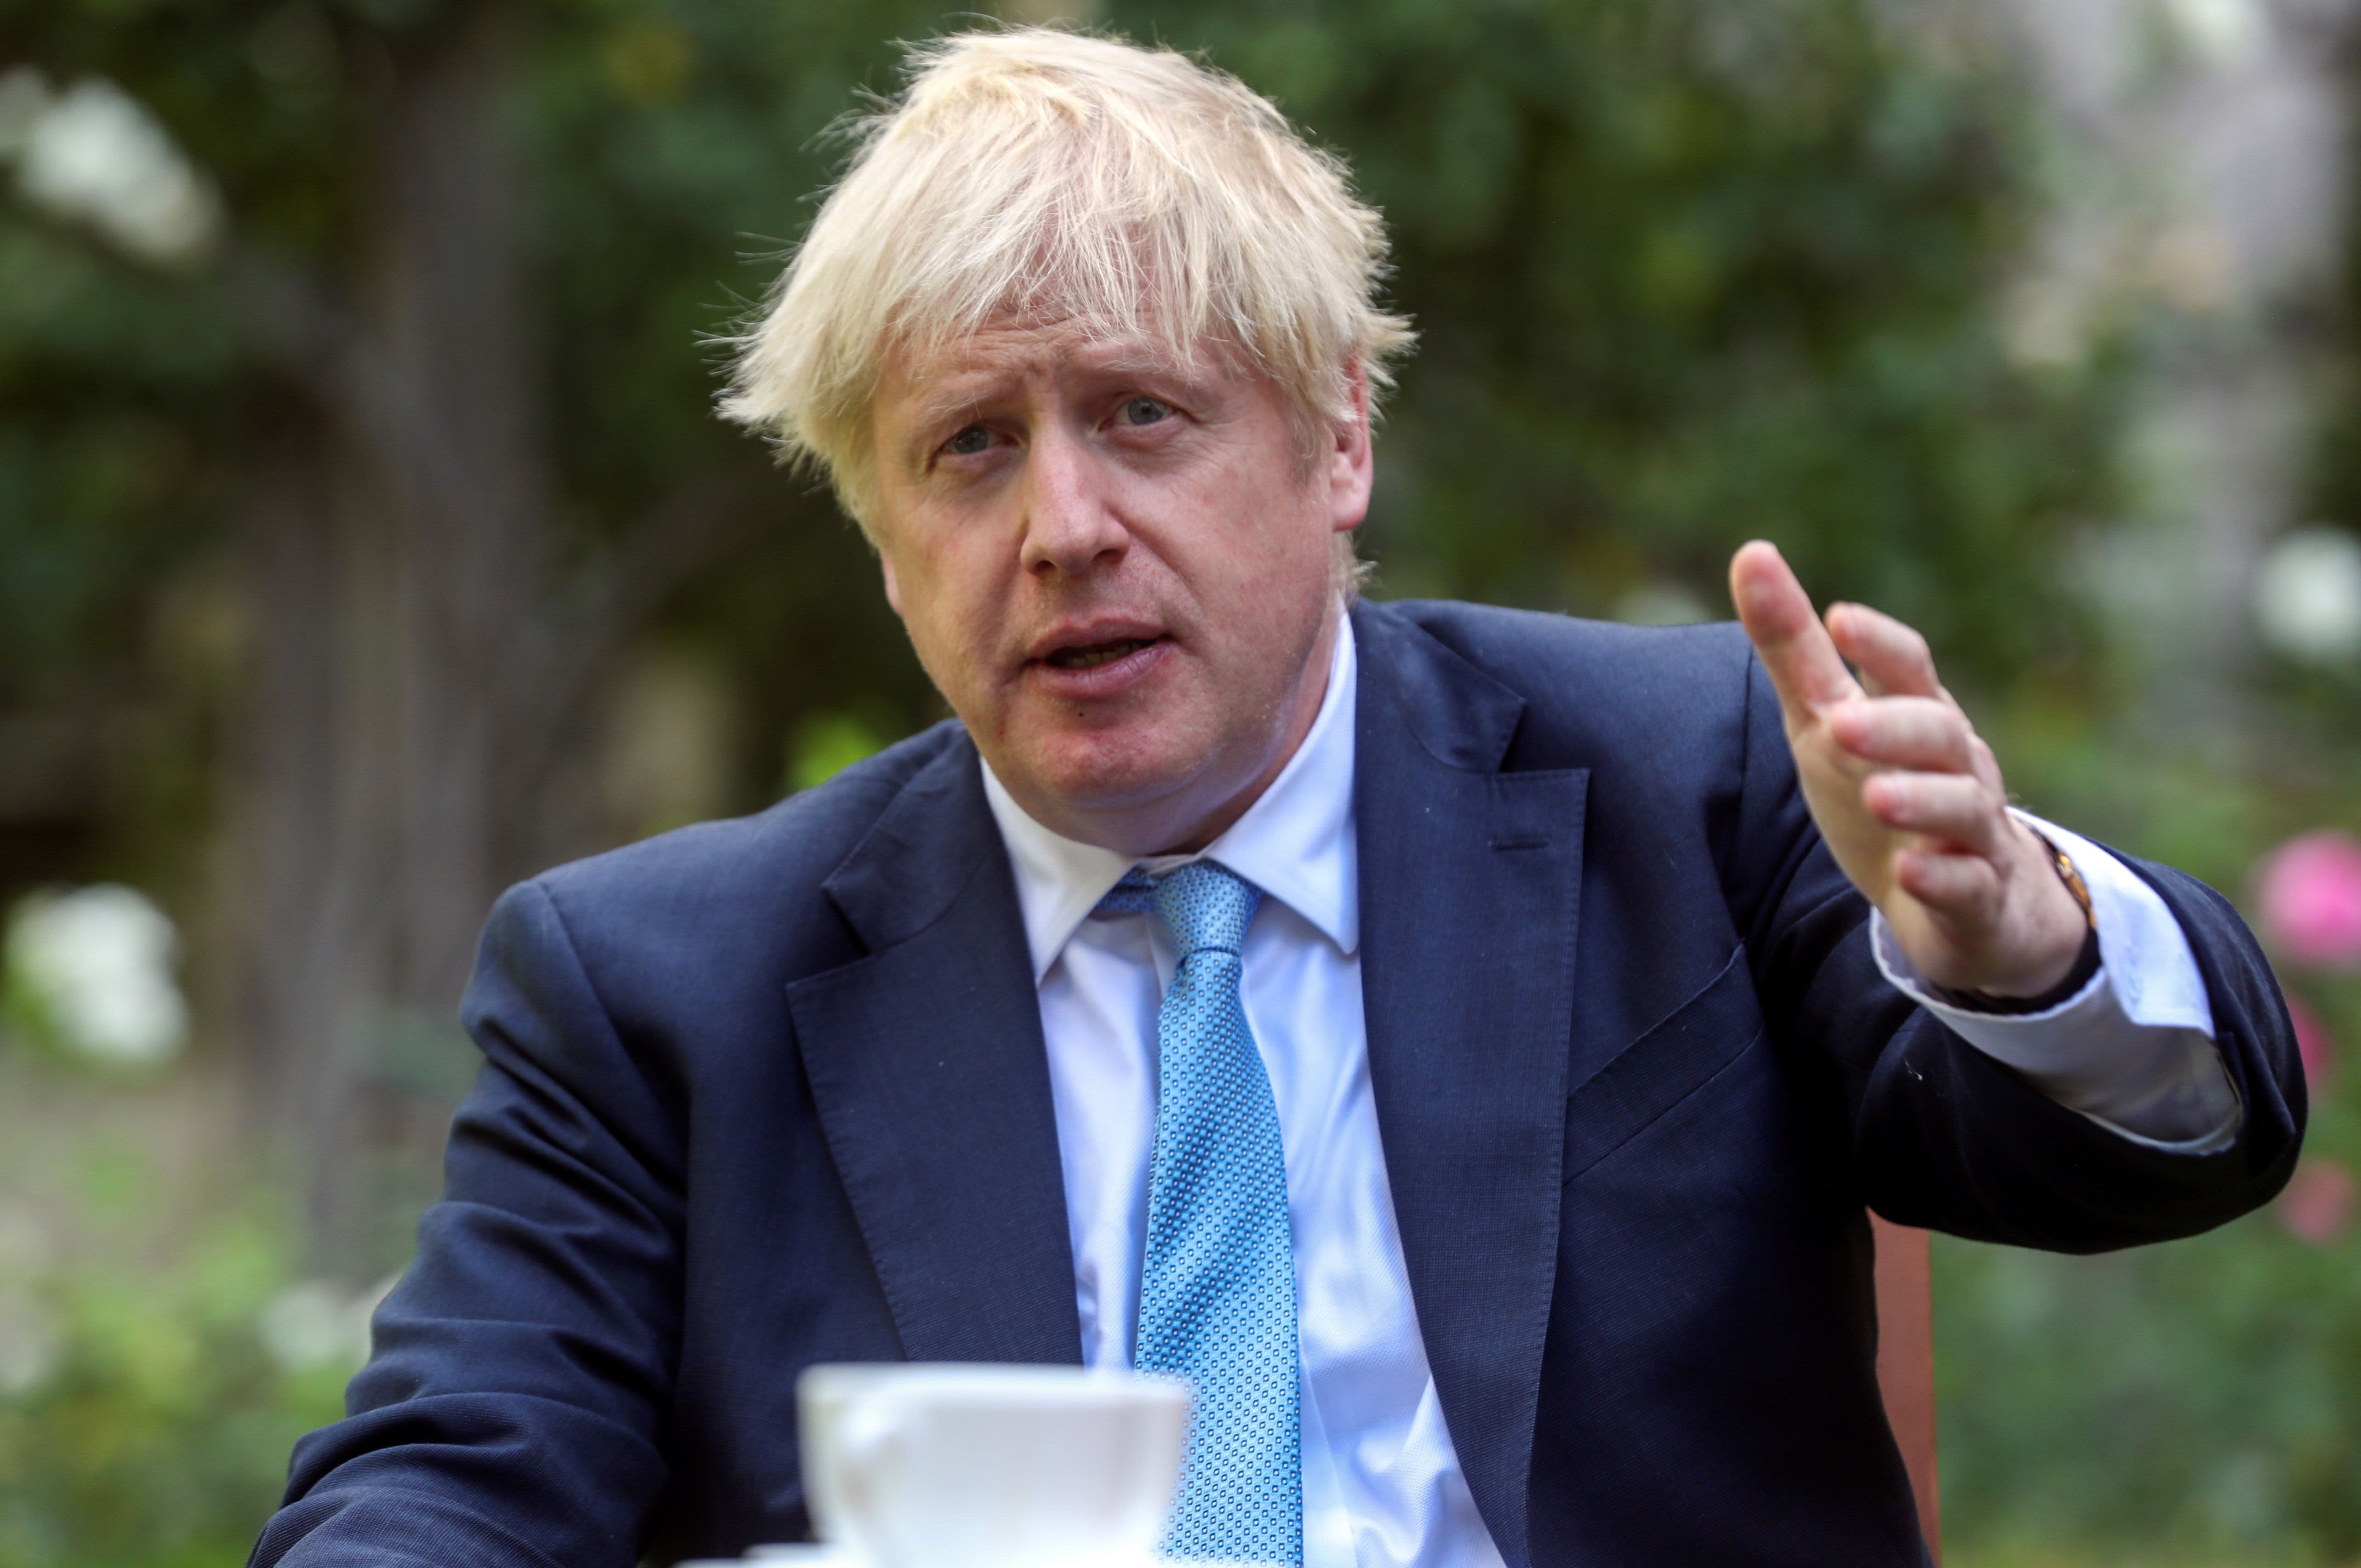 Boris Johnson set for Brexit showdown in historic day for UK politics